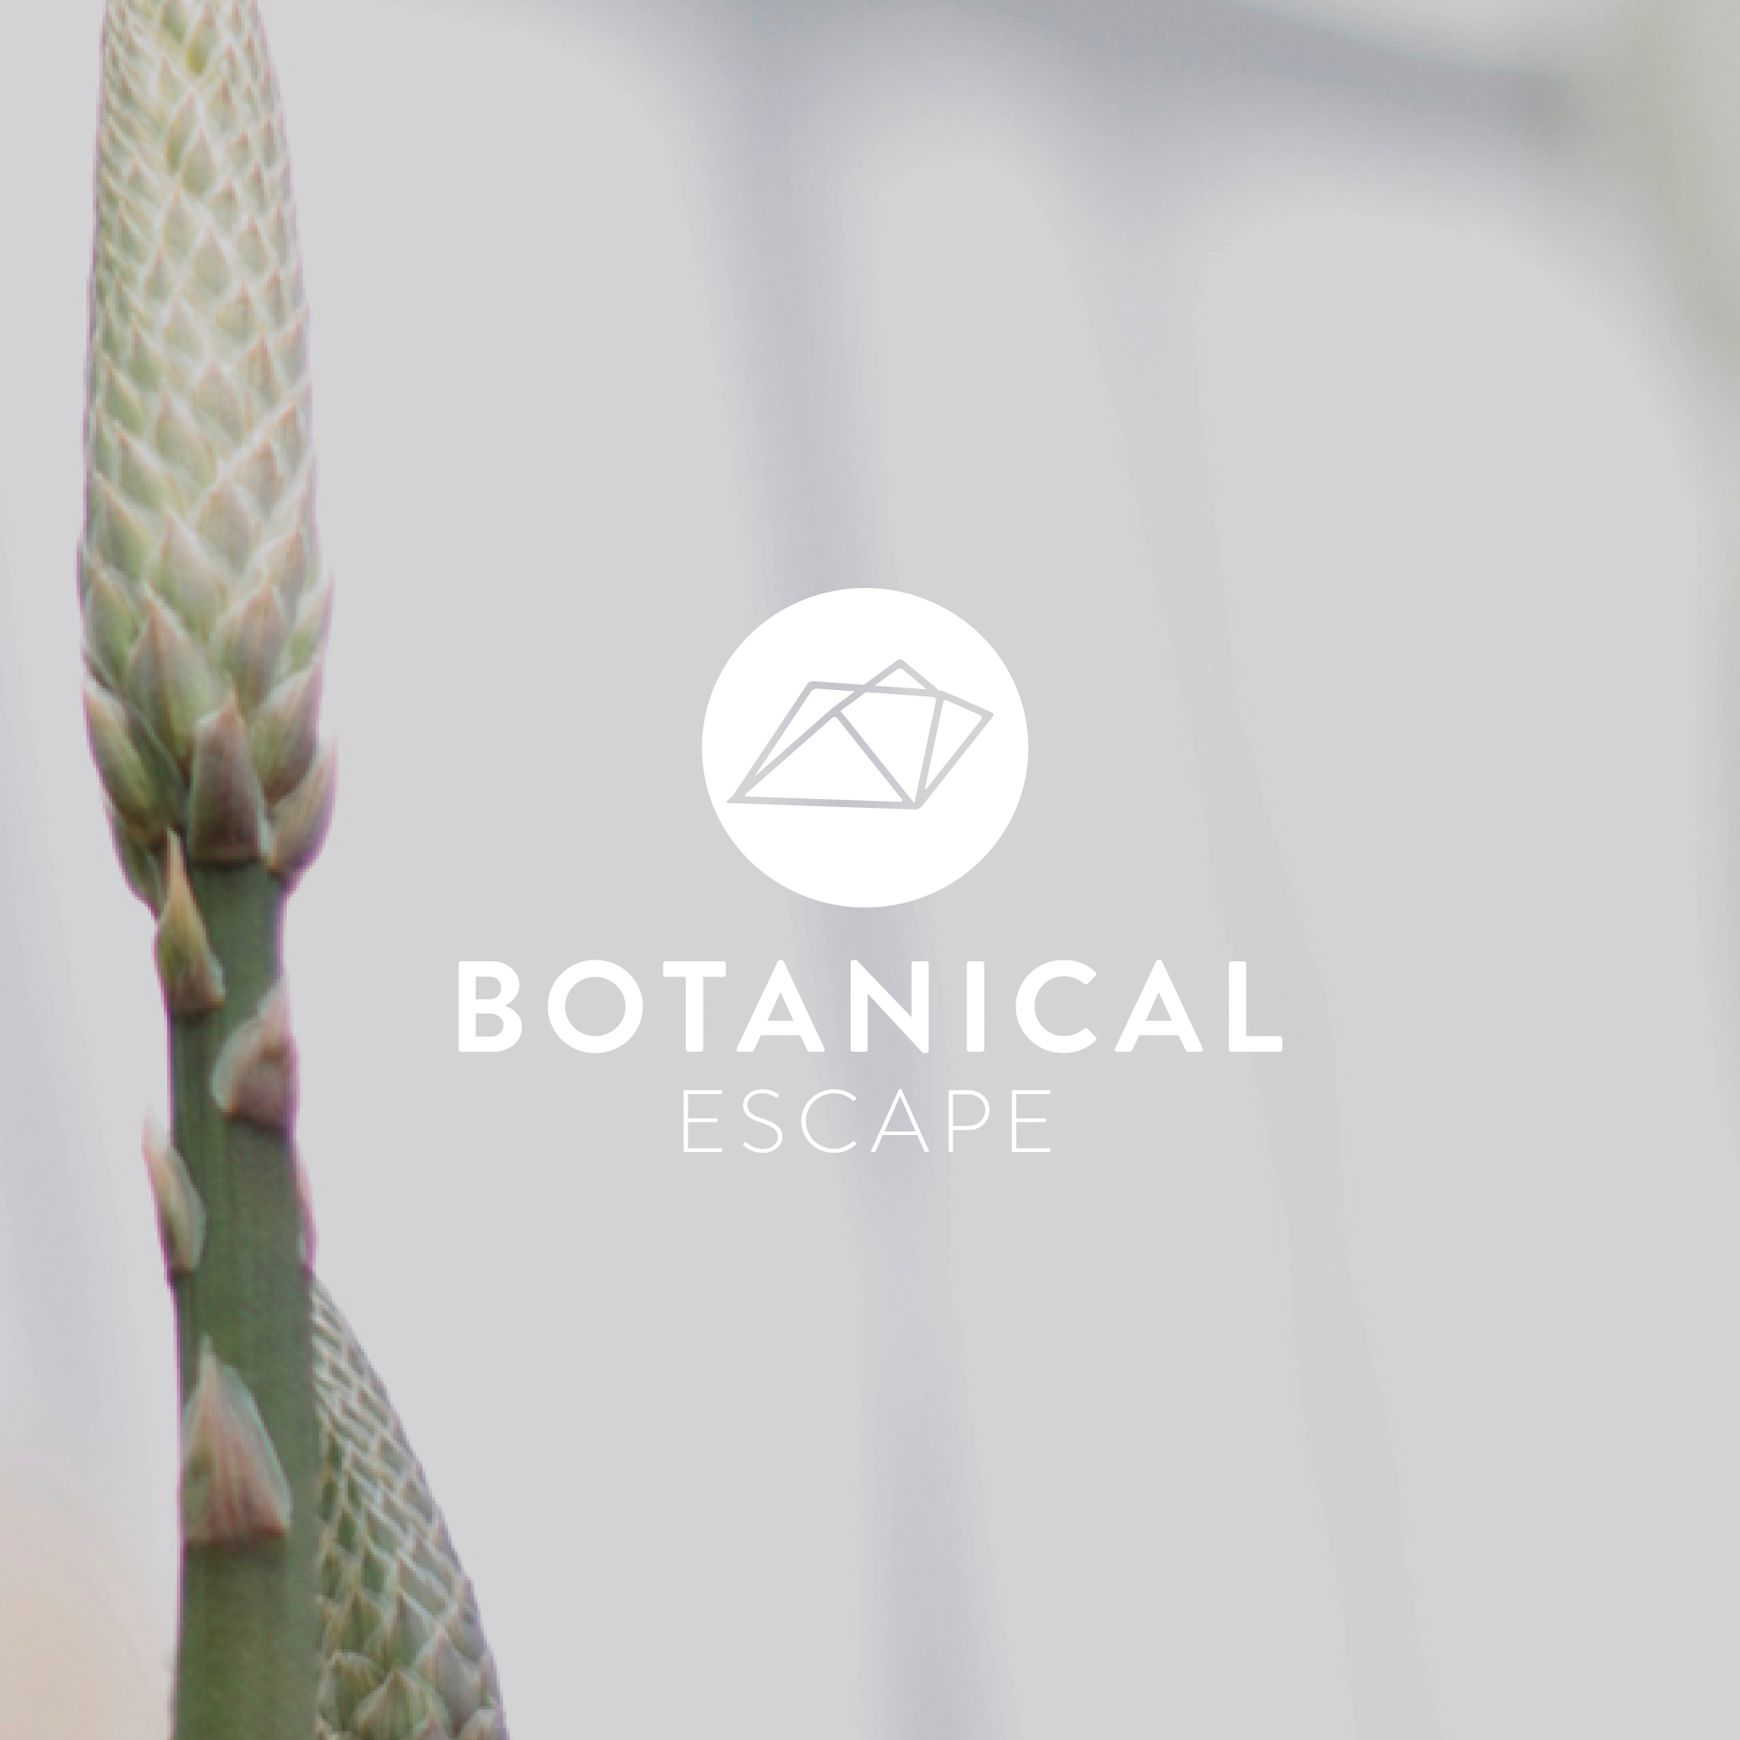 A Botanical Escape​